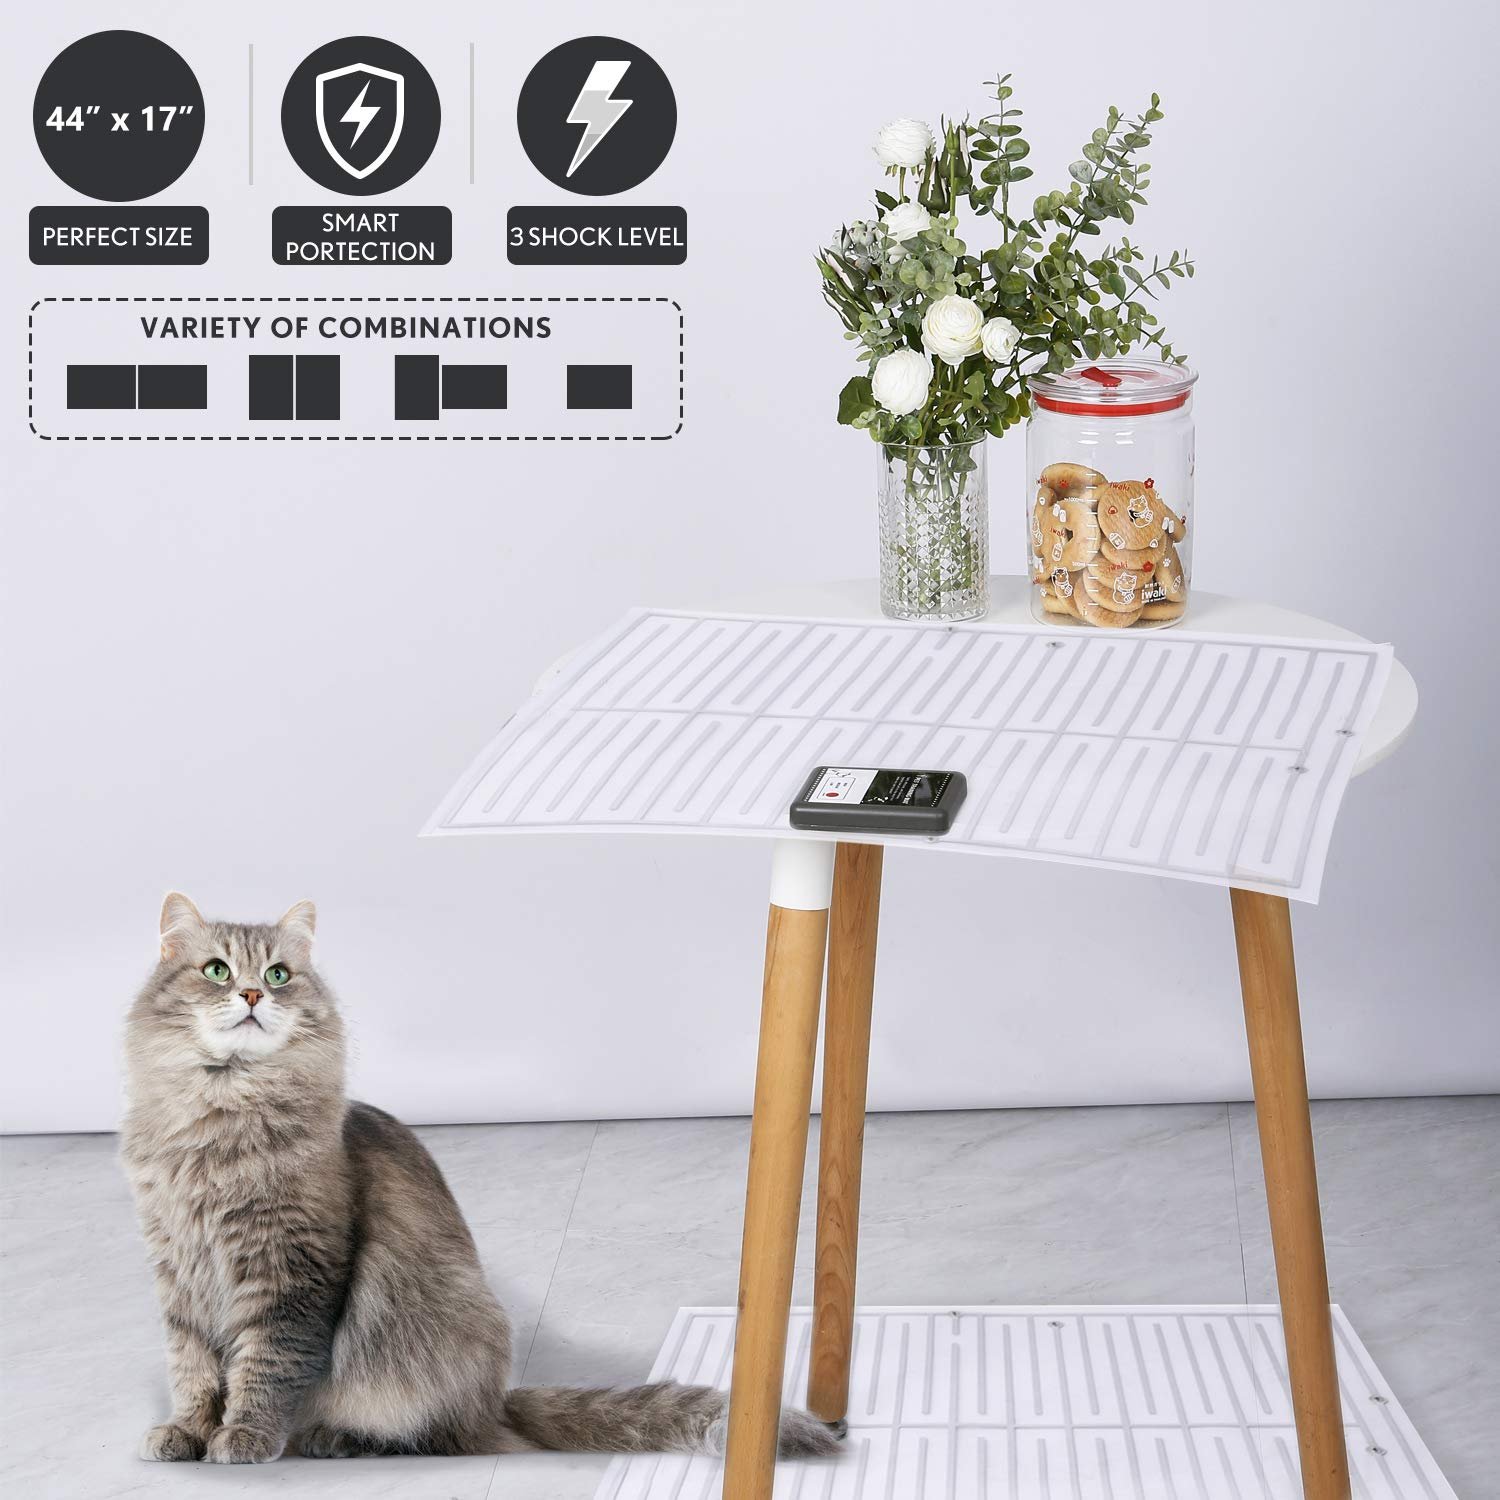 2Pcs Pet Scat Cat Mat for Dogs Cats,44''x17'' Adjustable Shape Dog Repellent Mats Indoor Outdoor,Best Pet Training Shock Mat,Pet Barrier for Off-Limit Areas,Keep Pets Off Furniture Sofa Couch, Safe UL